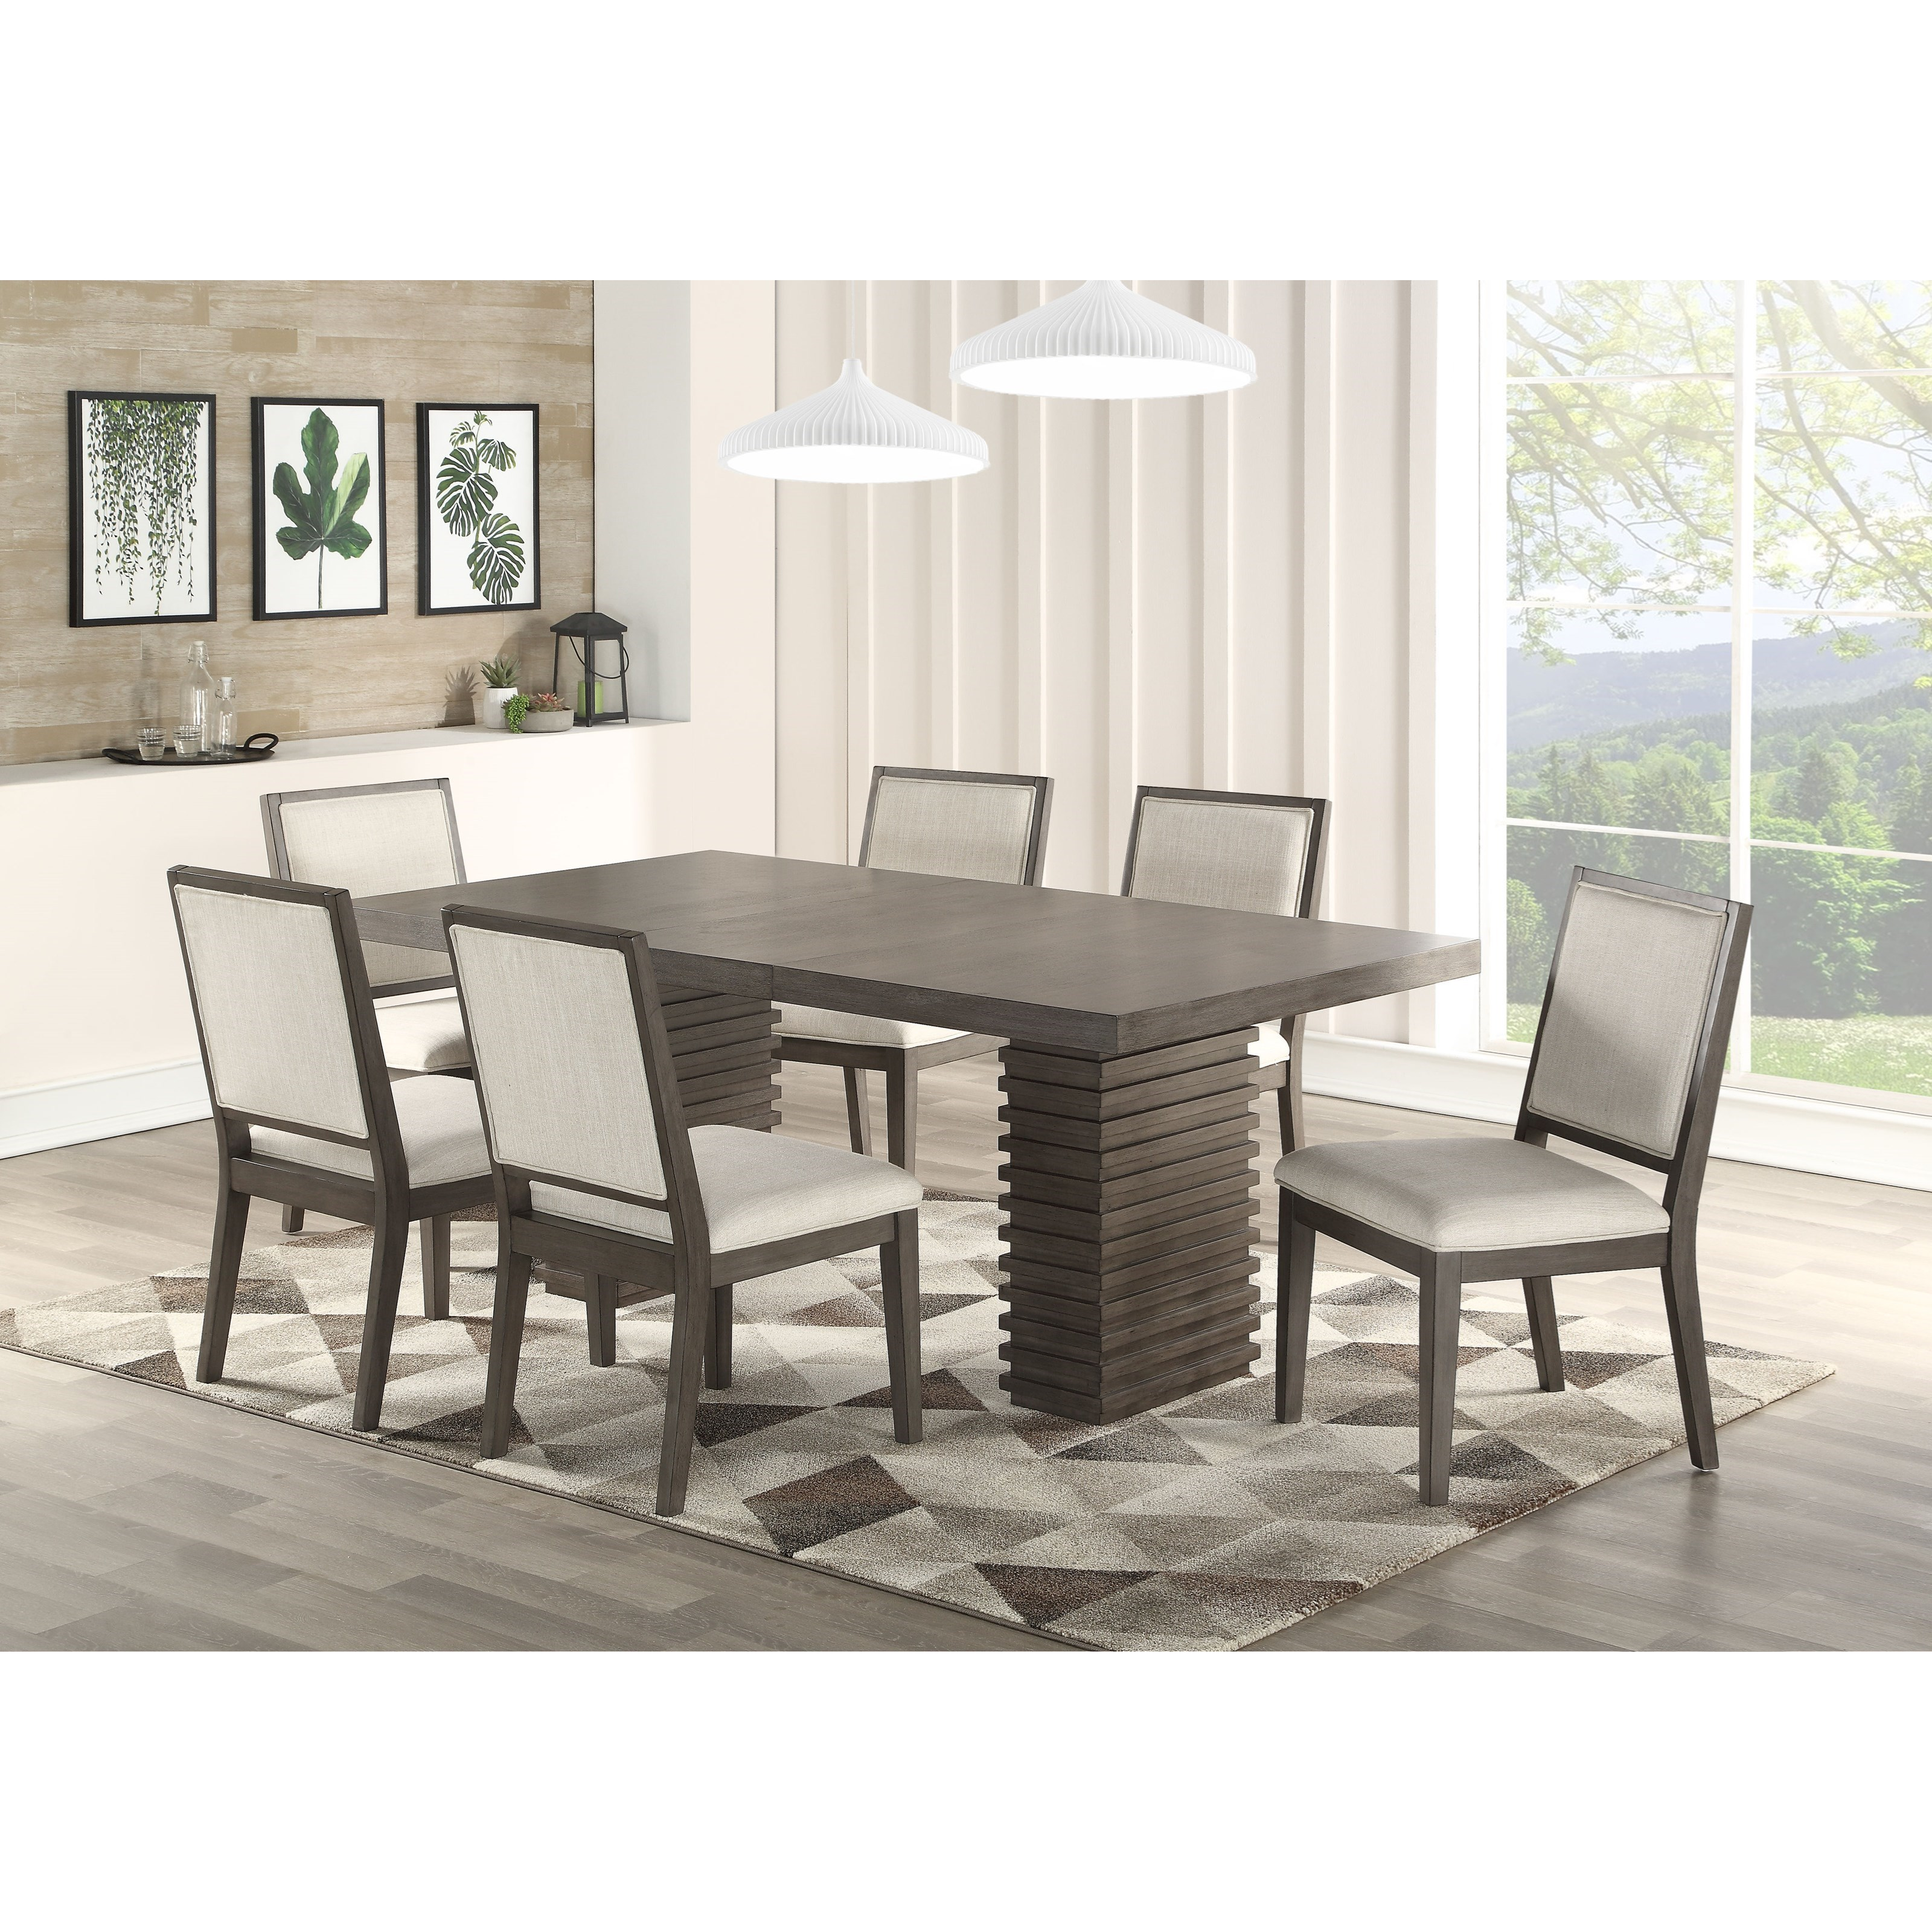 Mila 7 Piece Dining and Chair Set by Steve Silver at Northeast Factory Direct